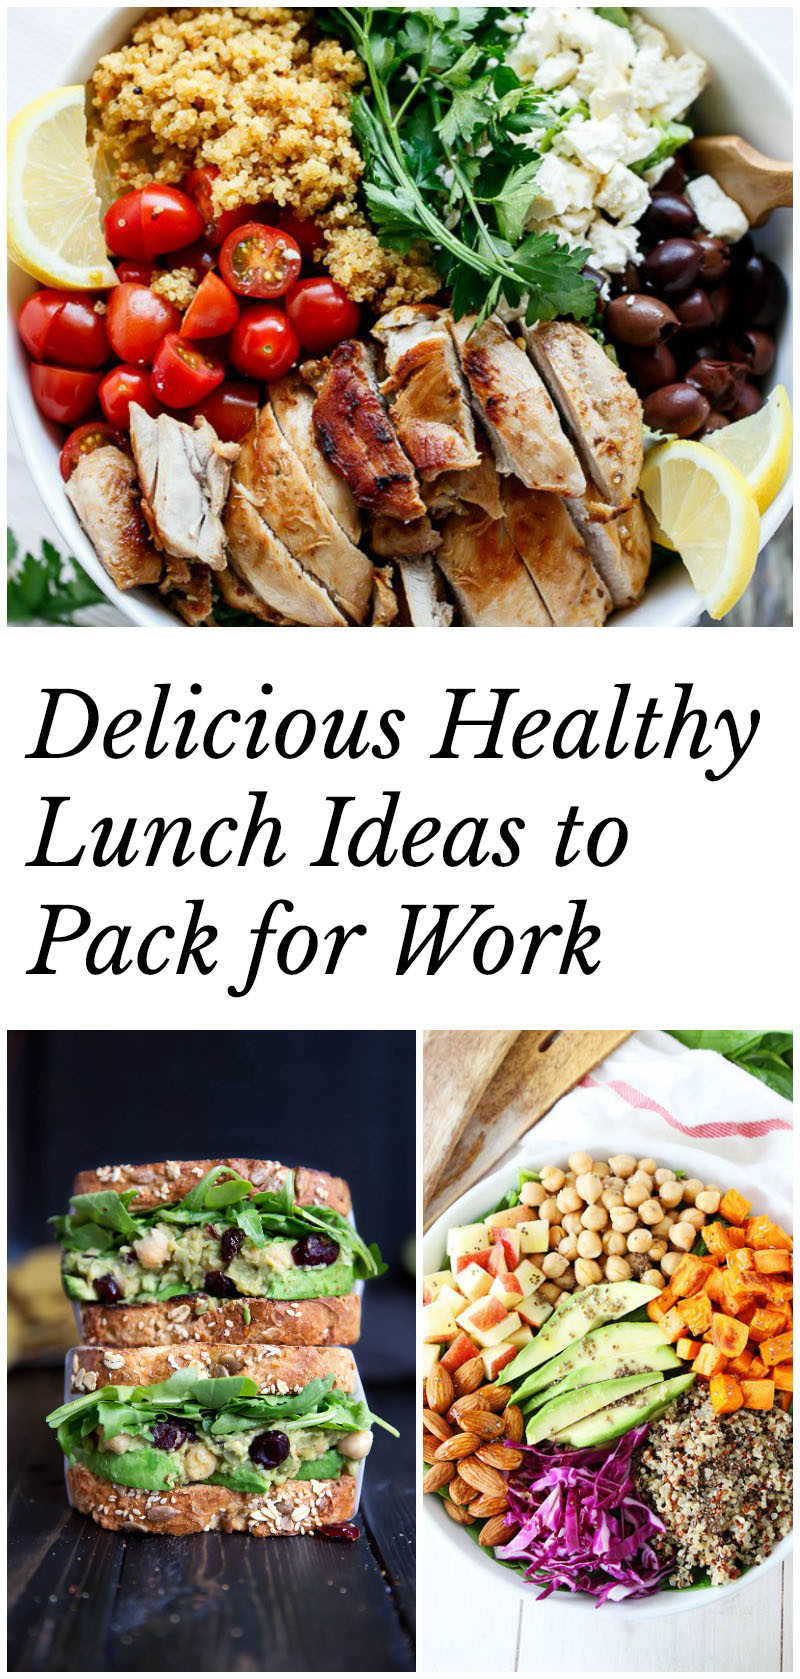 Easy And Healthy Lunches For Work  Healthy Lunch Ideas to Pack for Work 40 recipes